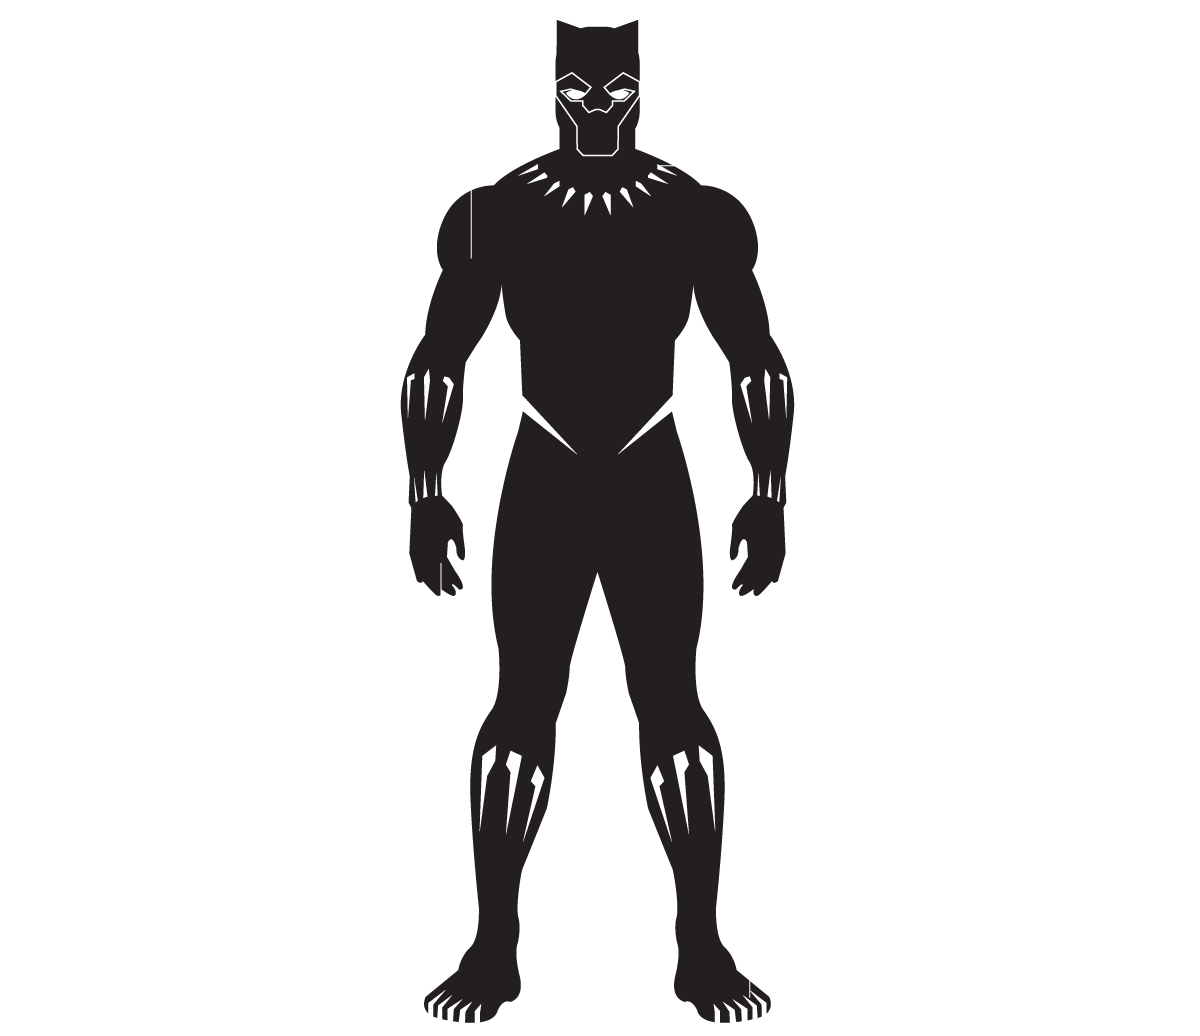 Panther clipart superhero, Picture #1820257 panther clipart.